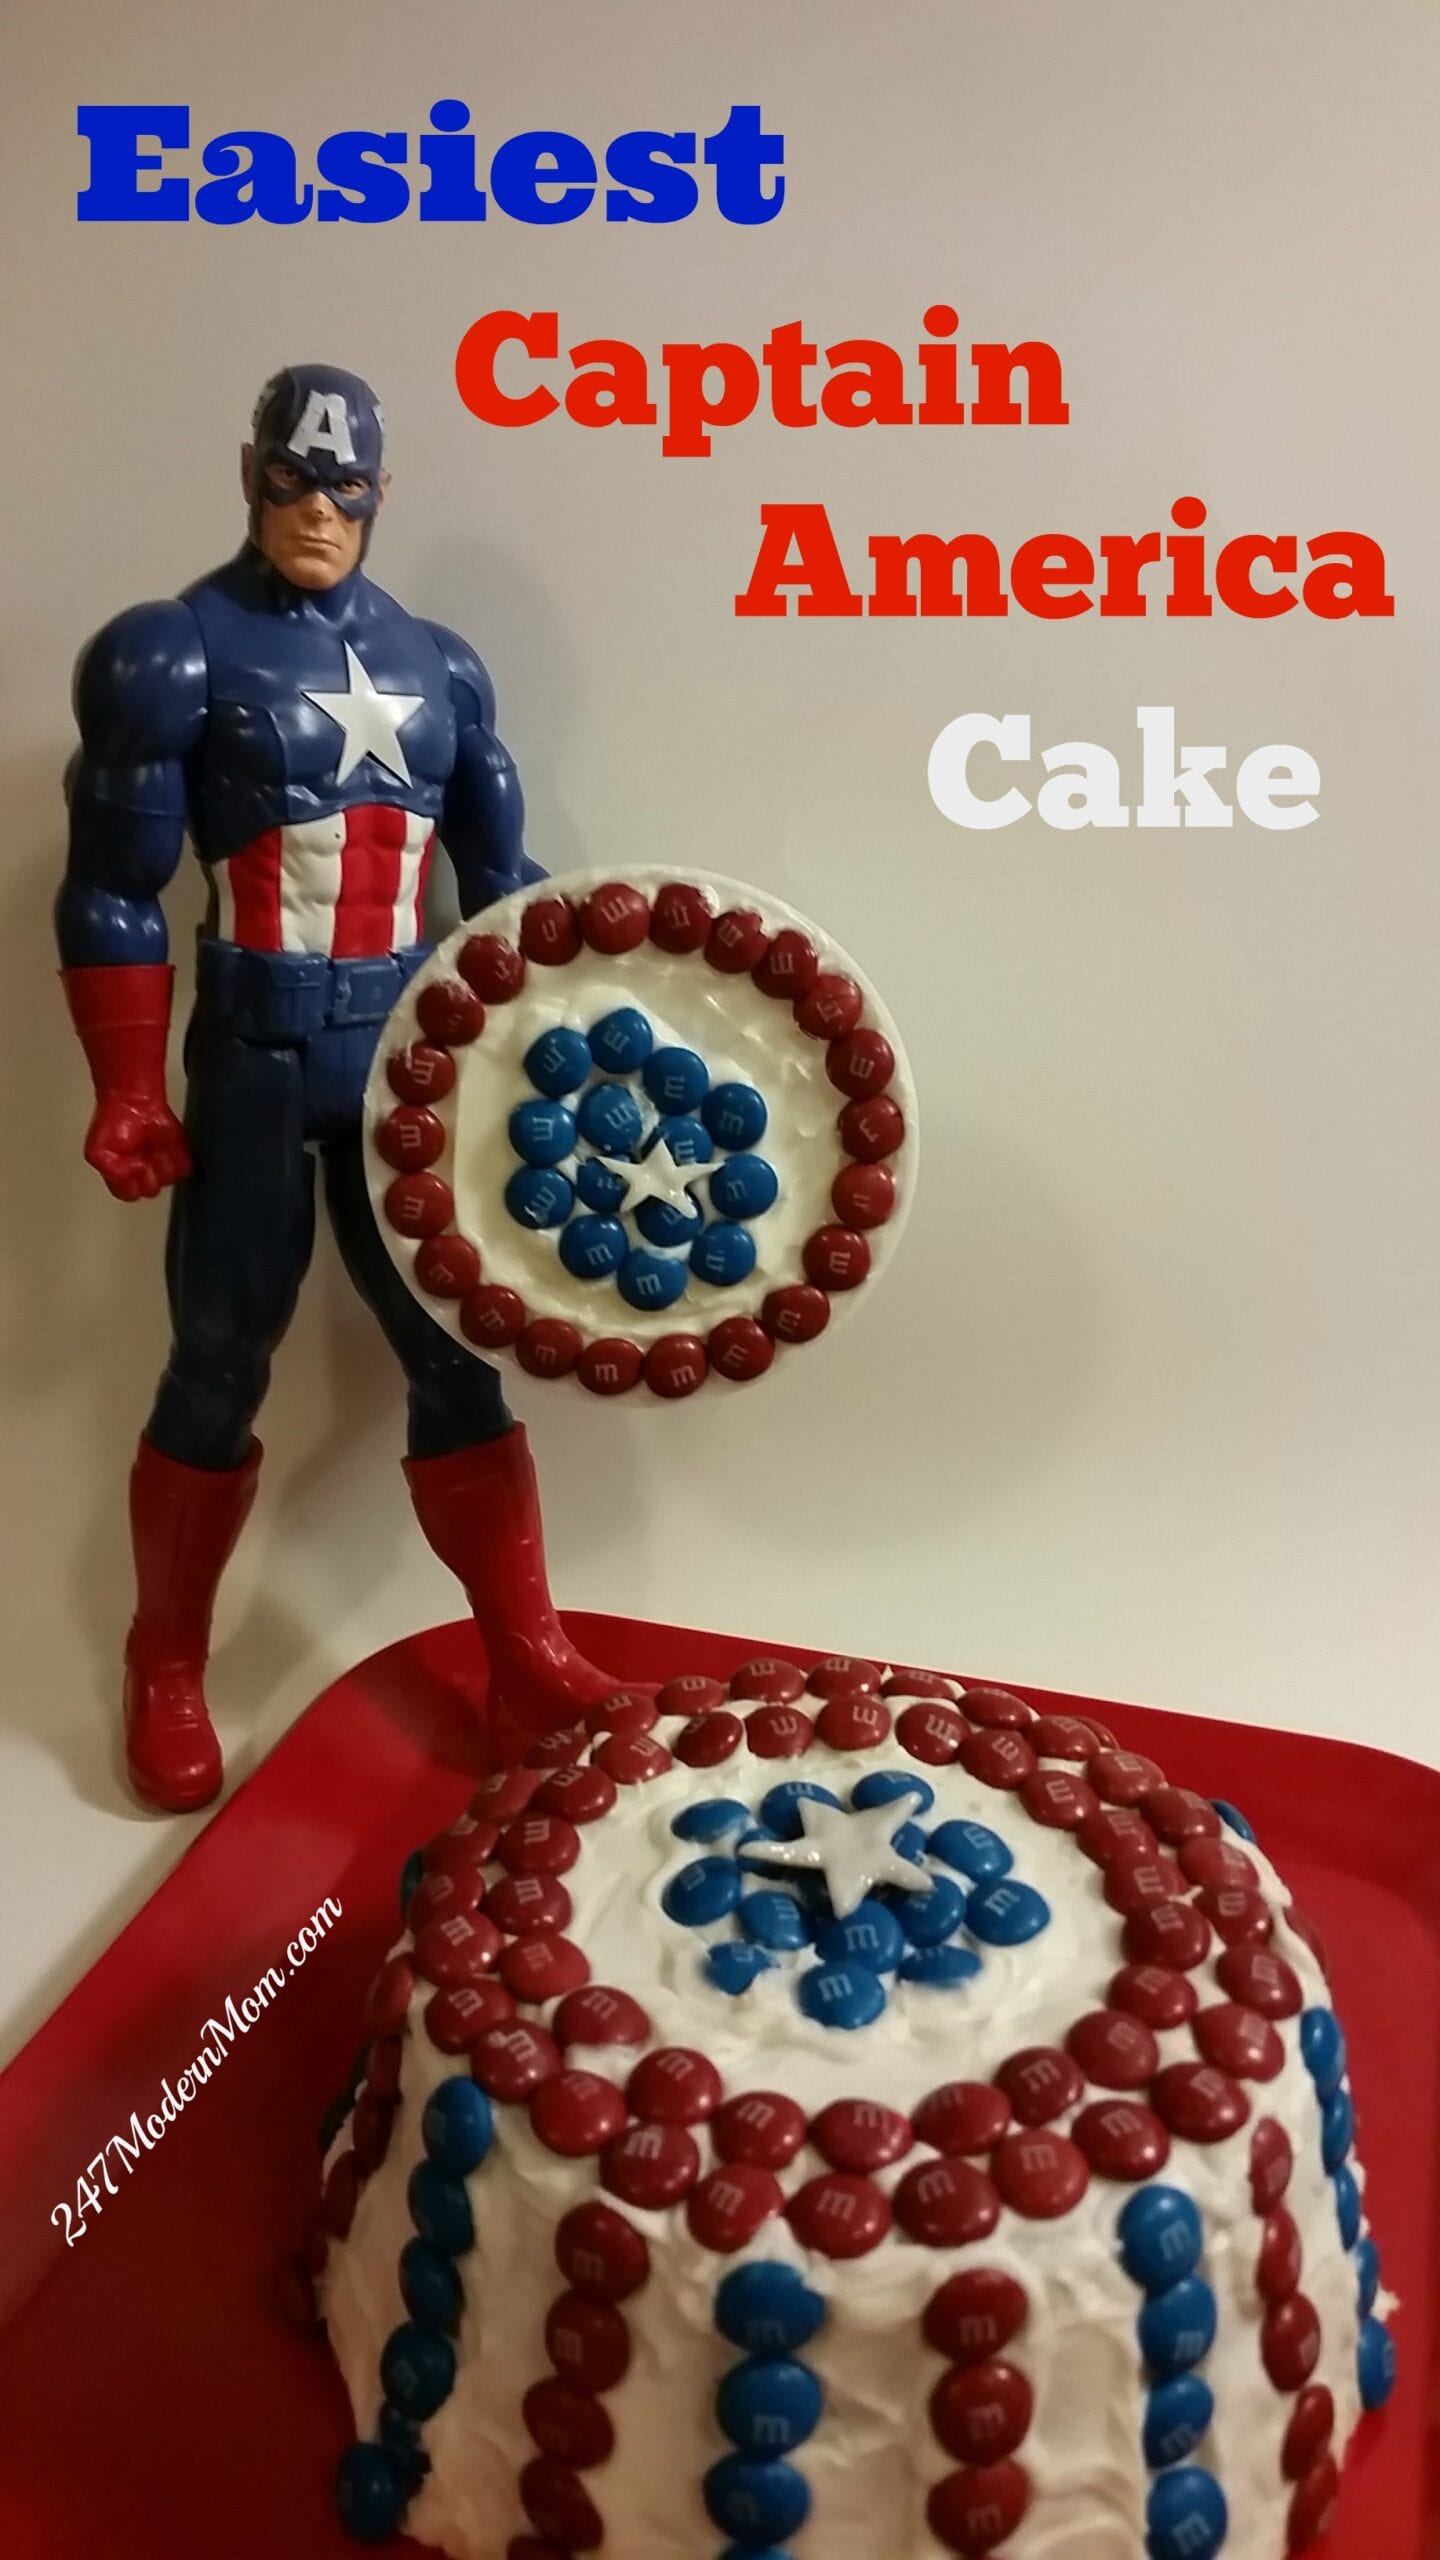 Easiest Captain America Cake Decoration: Plus TEN $100 Gift Cards Giveaway